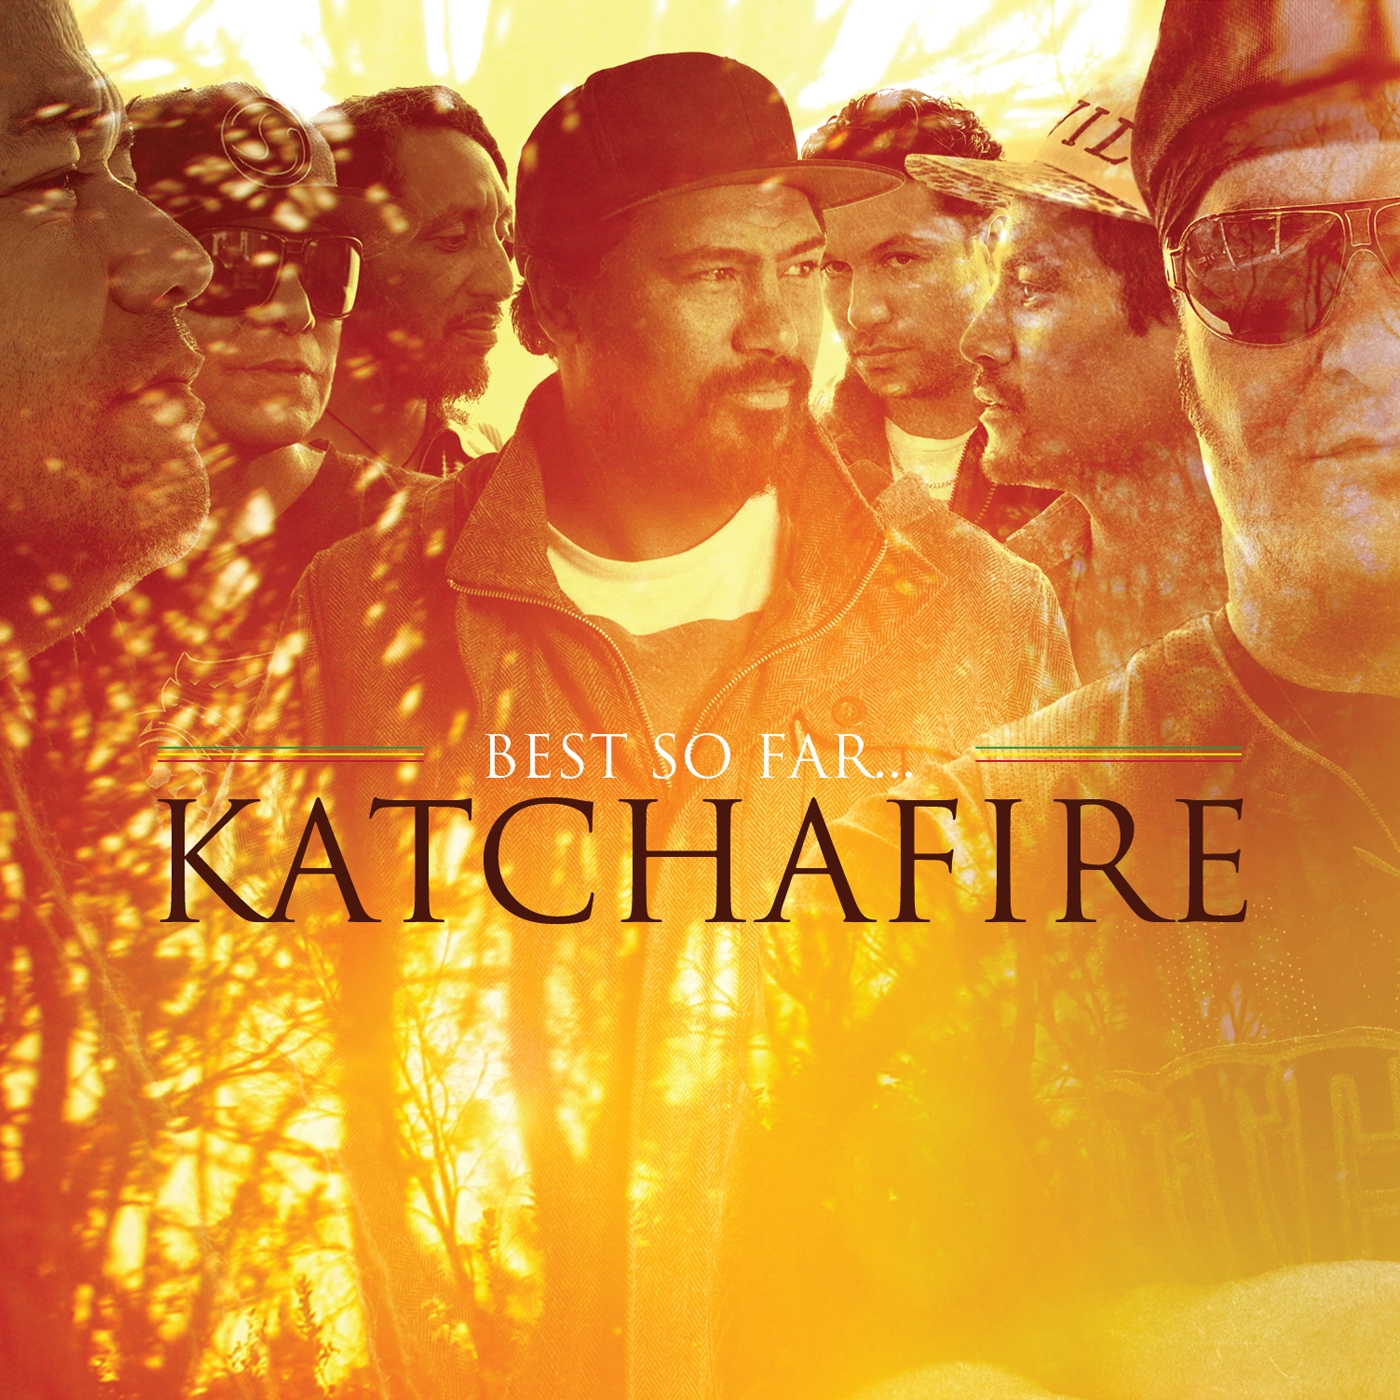 VP announces the release of Best So Far from Katchafire 16 tracks chronicling their rise as one of New Zealand's top reggae acts.  The US tour begins this month (see details below), to help launch the tour and upcoming album release please download the feature tracks.  Date Venue City  Sun 04/21/13 Mezzanine - San Francisco, CA  Tue 04/23/13 Arcata Theatre - Arcata, CA  Wed 04/24/13 El Rey Theatre - Chico, CA  Thu 04/25/13 Ace Of Spades - Sacramento, CA  Sun 04/28/13 Soho Restaurant & Music Club - Santa Barbara, CA  Fri 05/03/13 Fox Theatre - Boulder, CO  Fri 05/10/13 Shank Hall - Milwaukee, WI  Sat 05/11/13 Bottom Lounge - Chicago, IL  Fri 05/17/13 Ridglea Theater -Fort Worth, TX  Wed 05/22/13 Crescent Ballroom - Phoenix, AZ  Sat 05/25/13 House of Blues - Anaheim, CA  Sun 05/26/13 Monterey Co. Fairgrounds - Monterey, CA